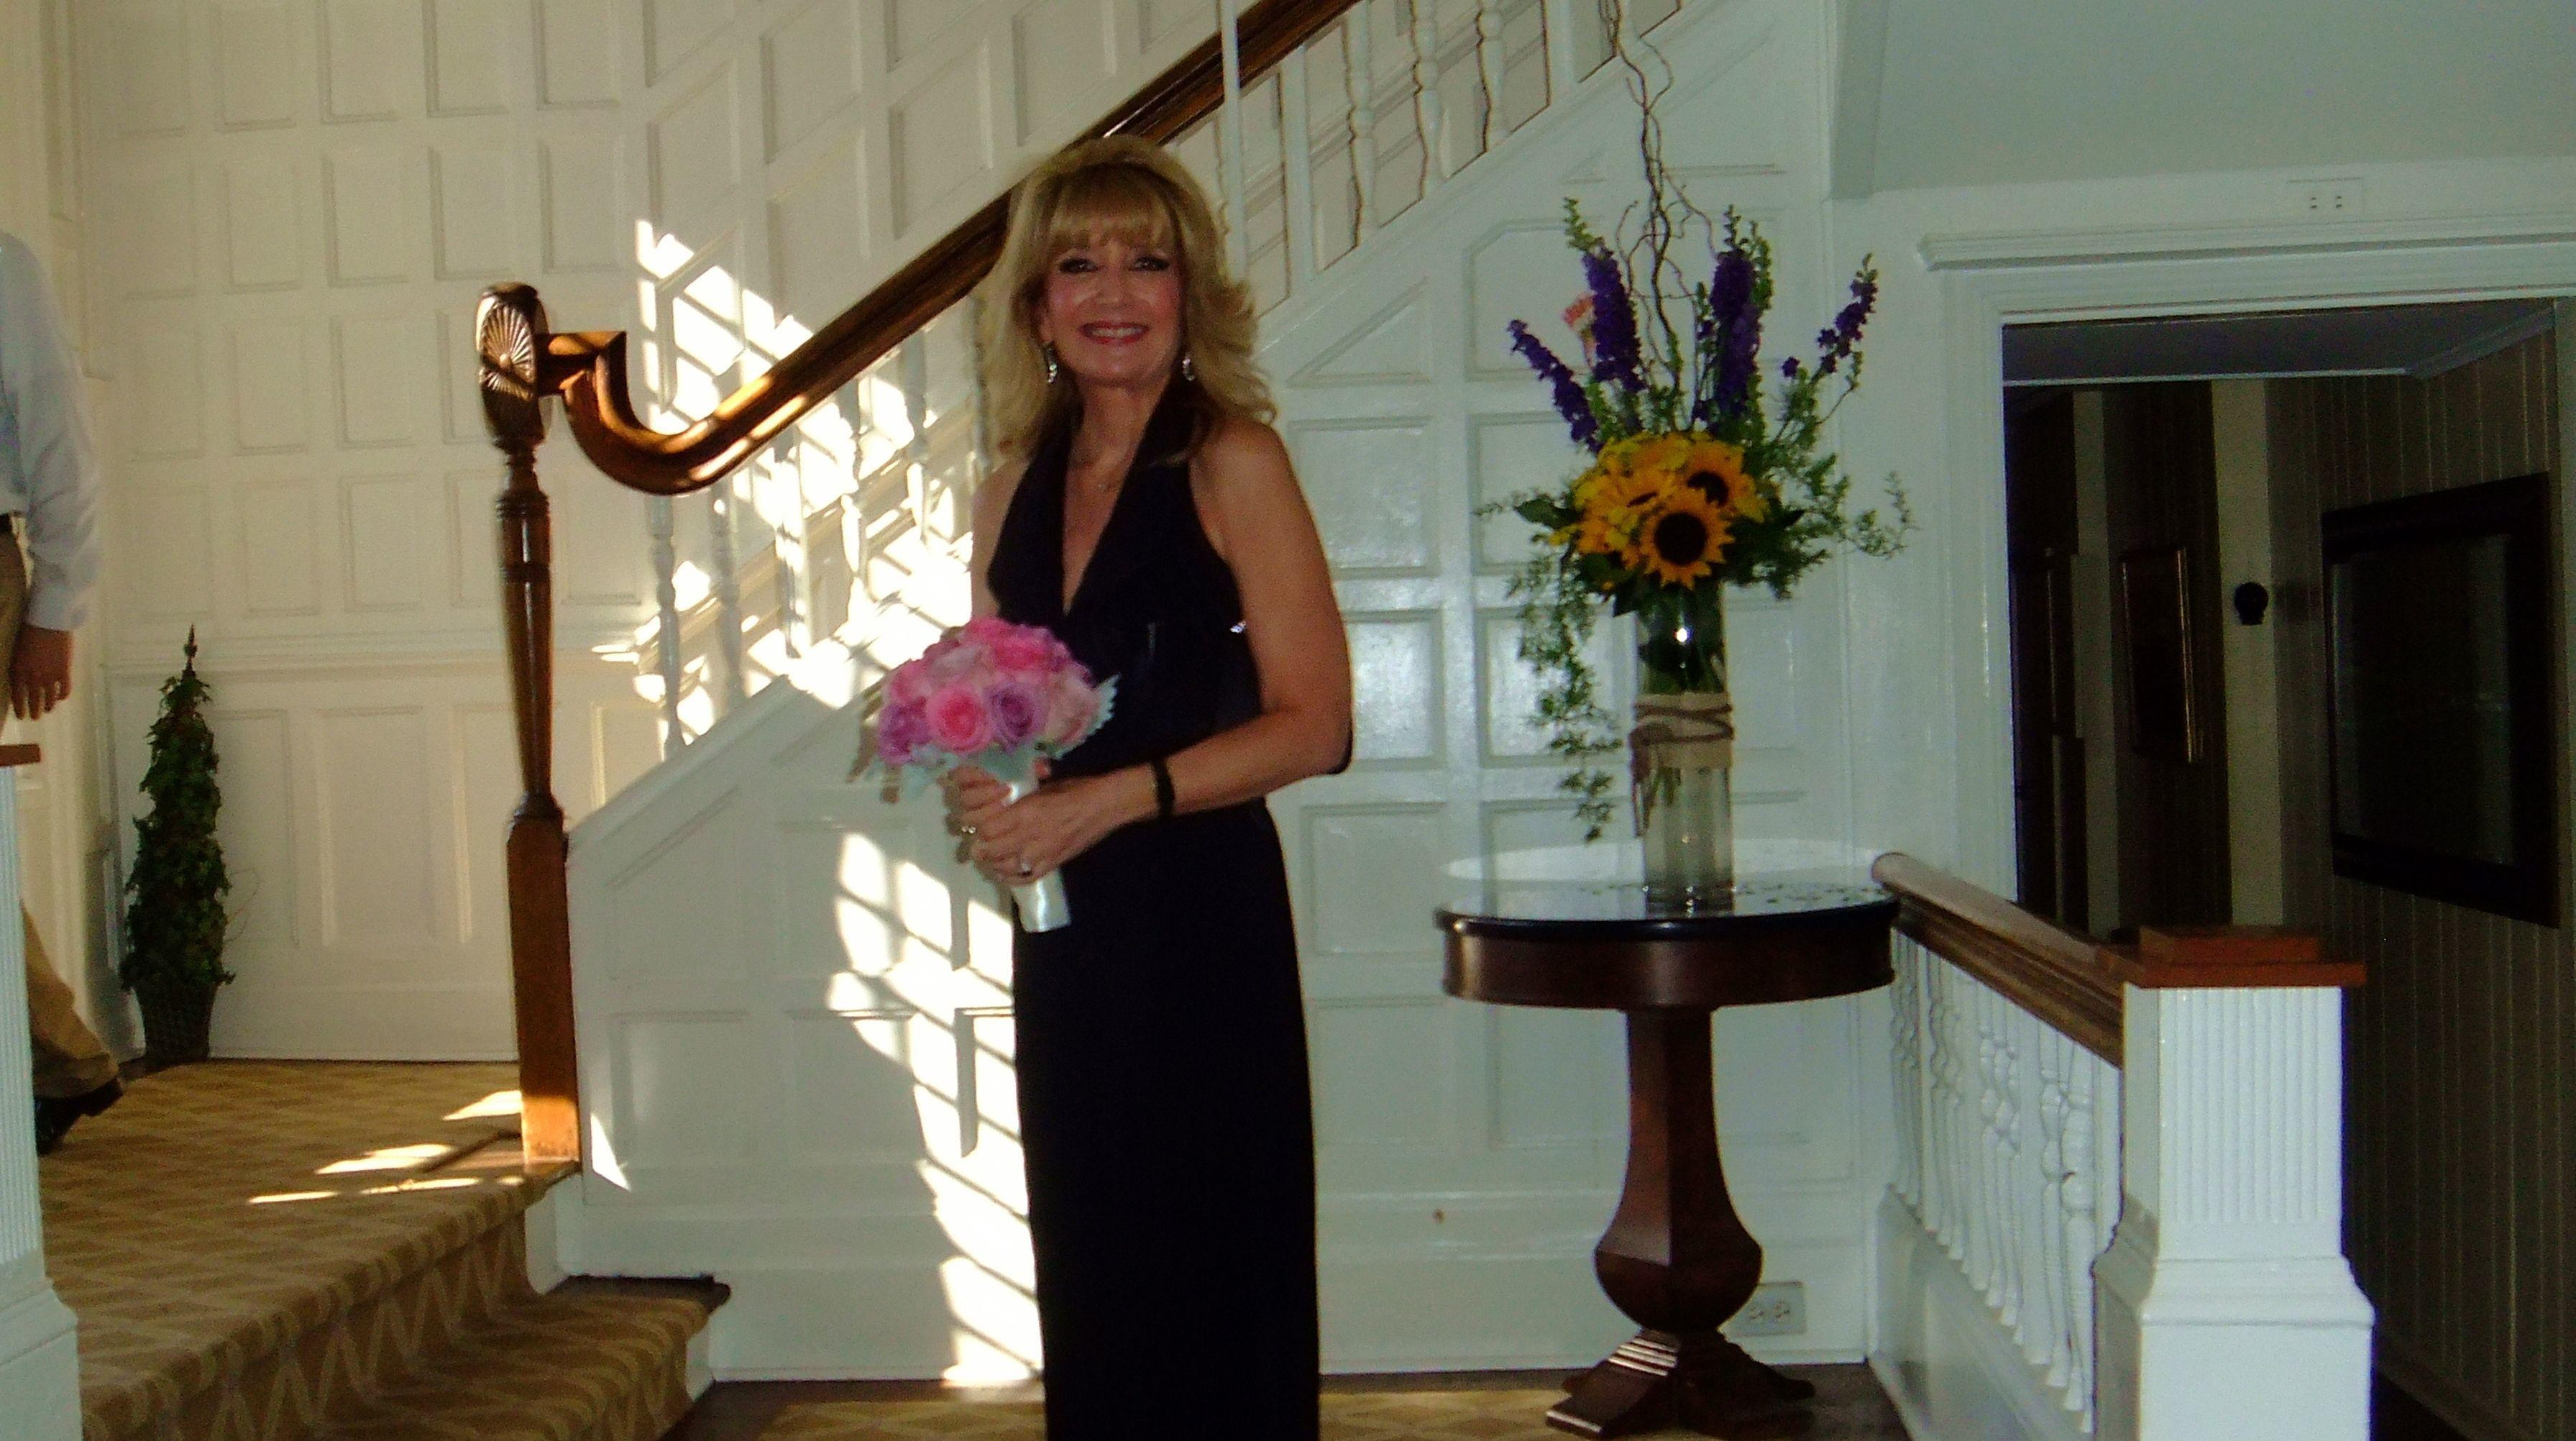 jewish singles in raleigh Singles events in the raleigh-durham area these events are the best places to meet local singles.